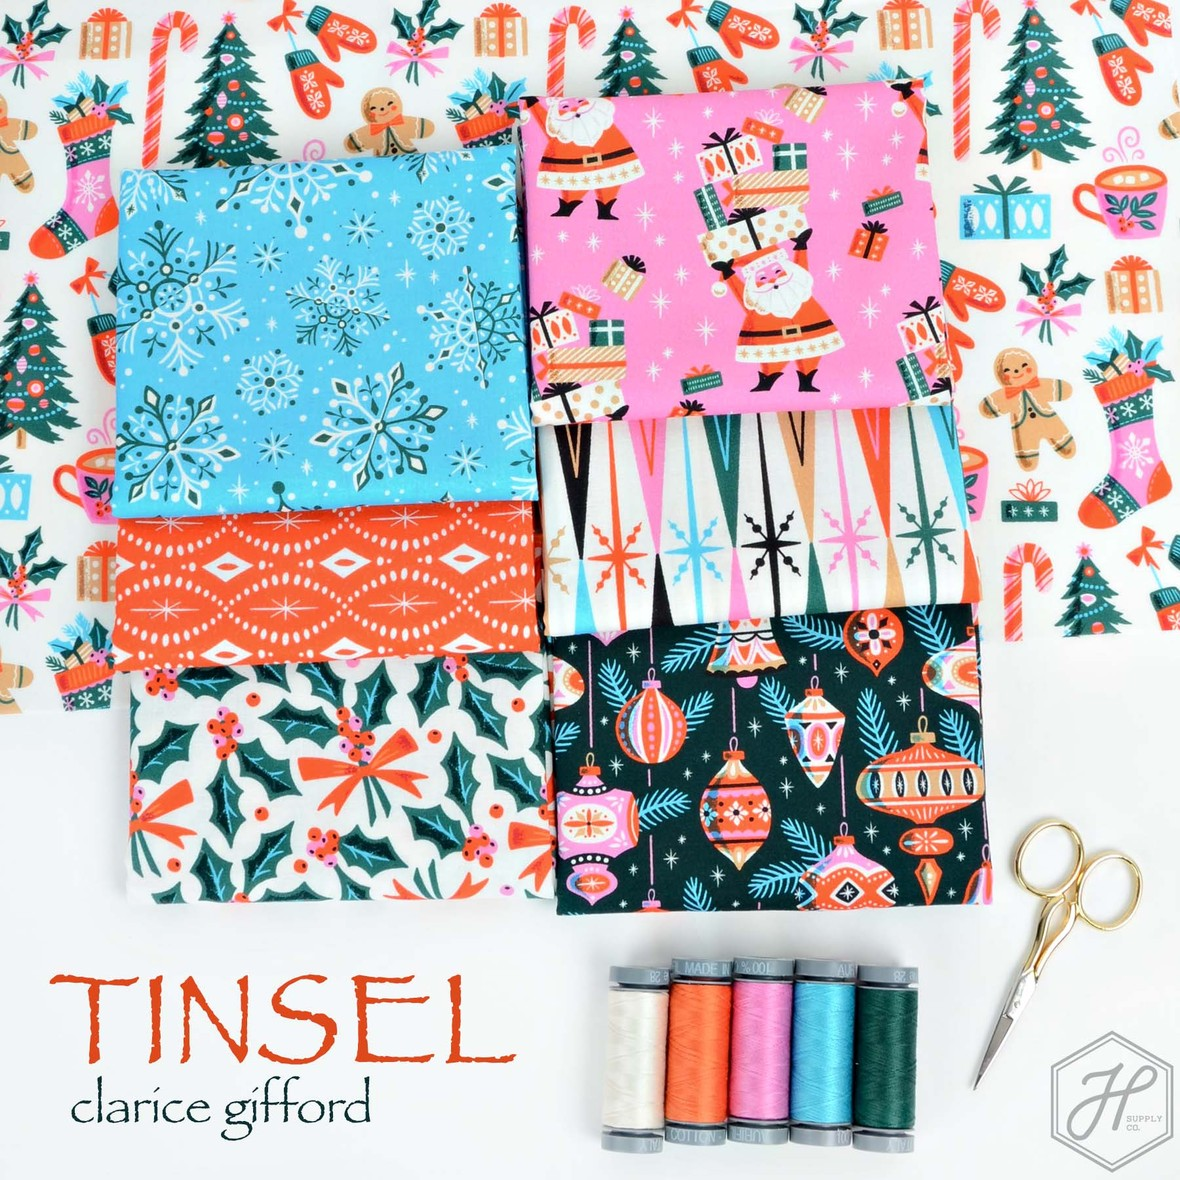 Tinsel Fabric Poster Clarice Gifford from Cloud 9 at Hawthorne Supply Co